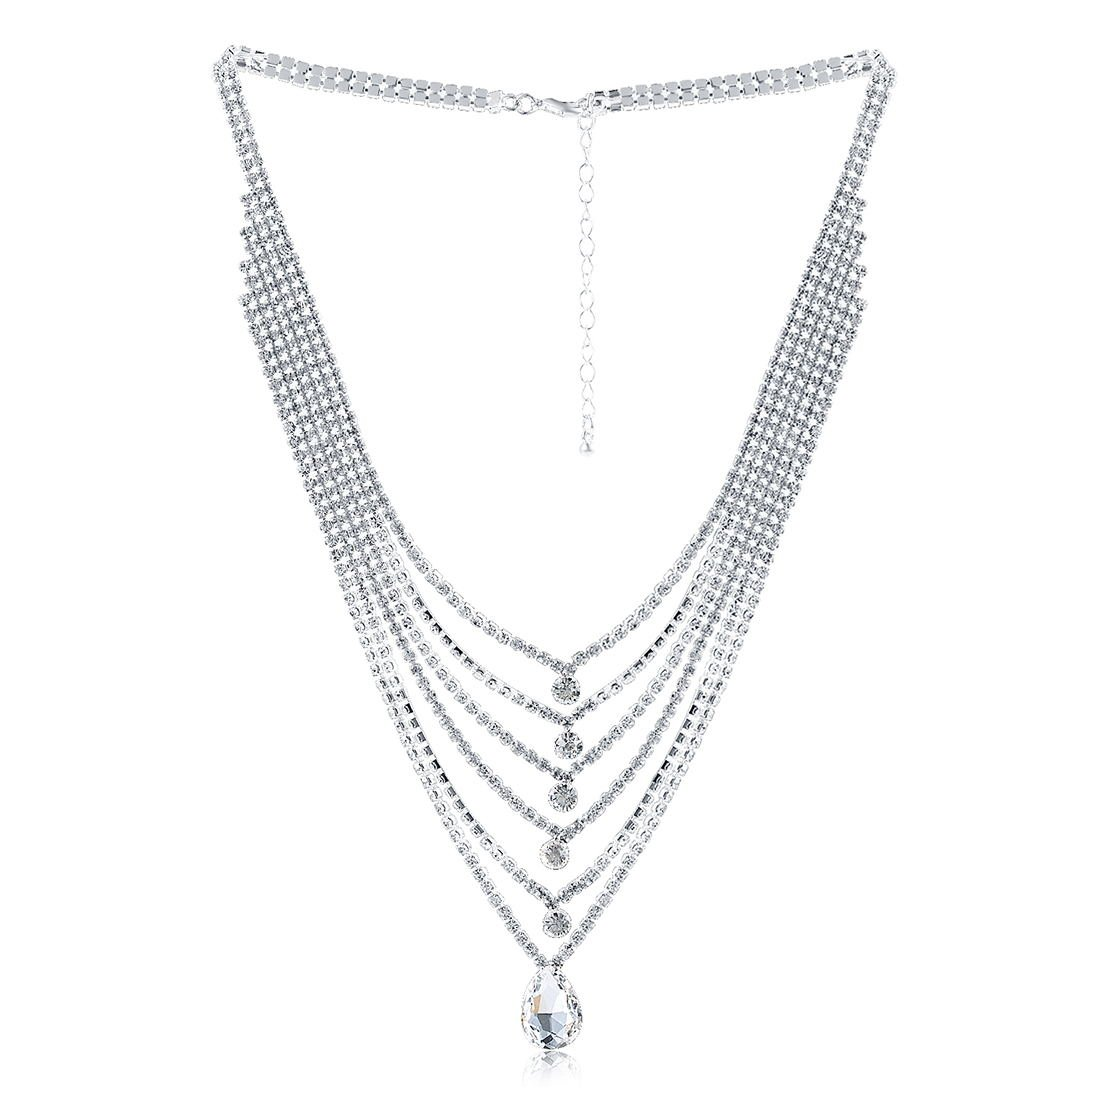 X&WILL Bridal Austrian Crystal Necklace Jewelry Set Gifts fit with Wedding Dress